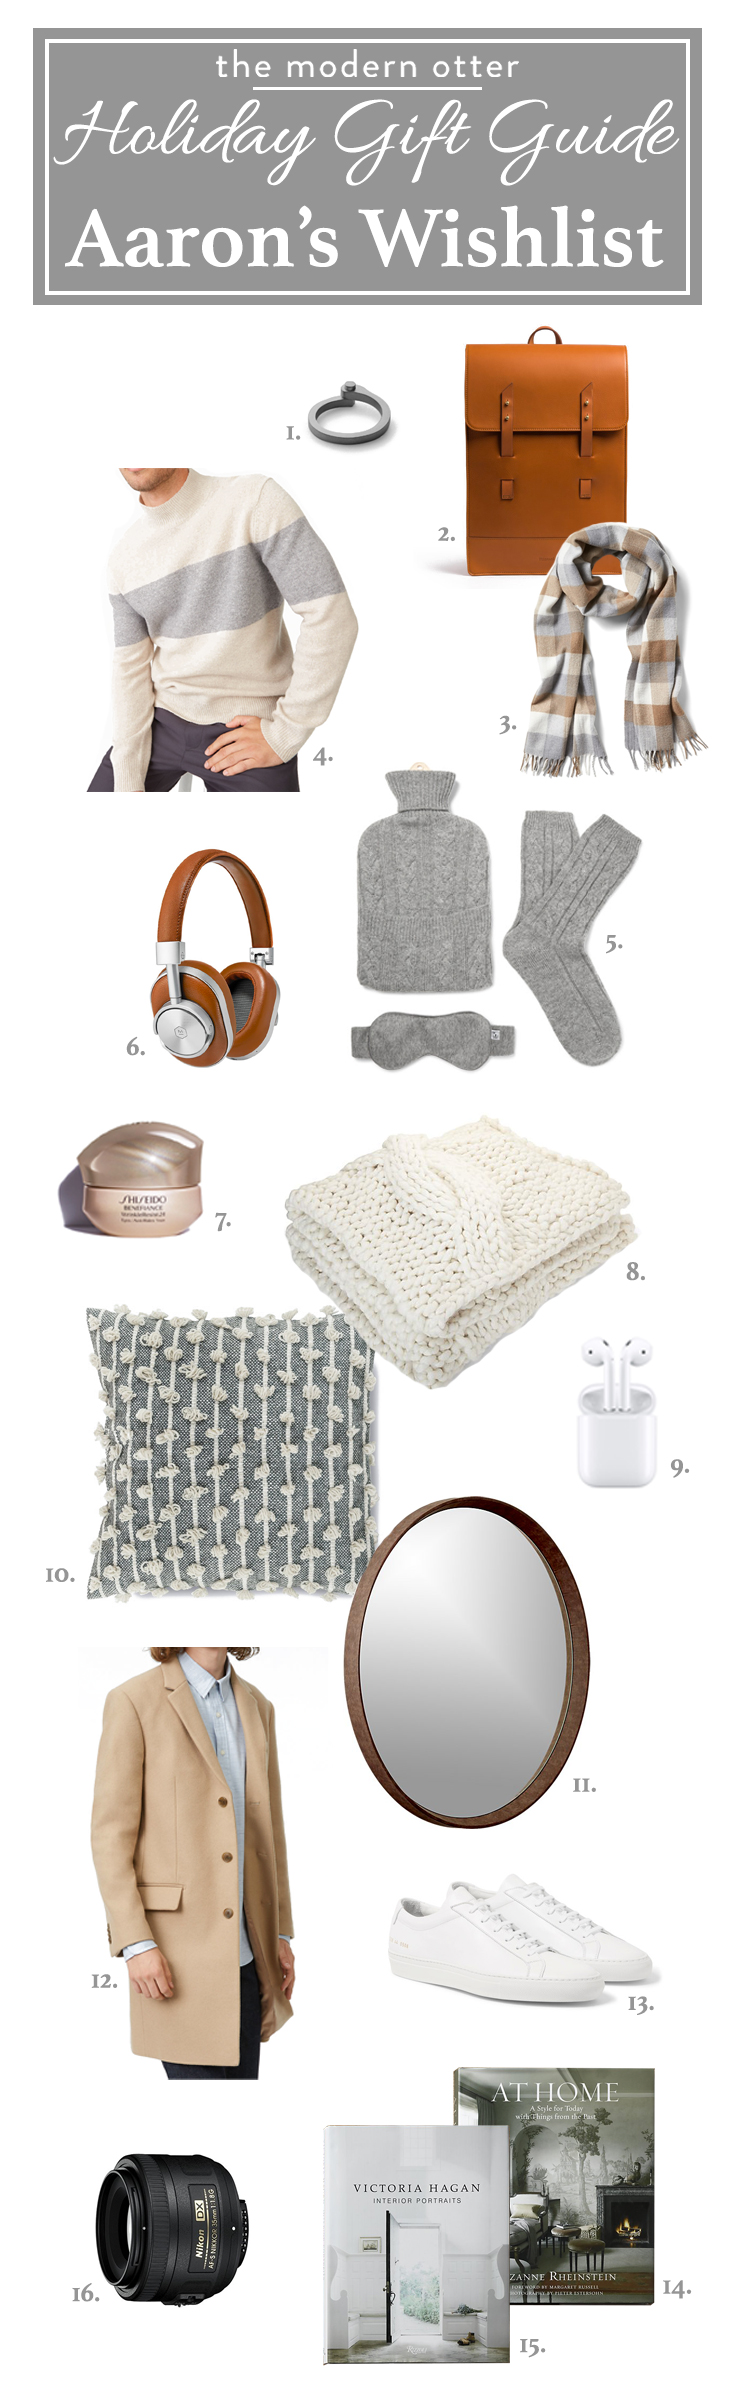 The Modern Otter Holiday Gift Guide: Aaron's Wishlist